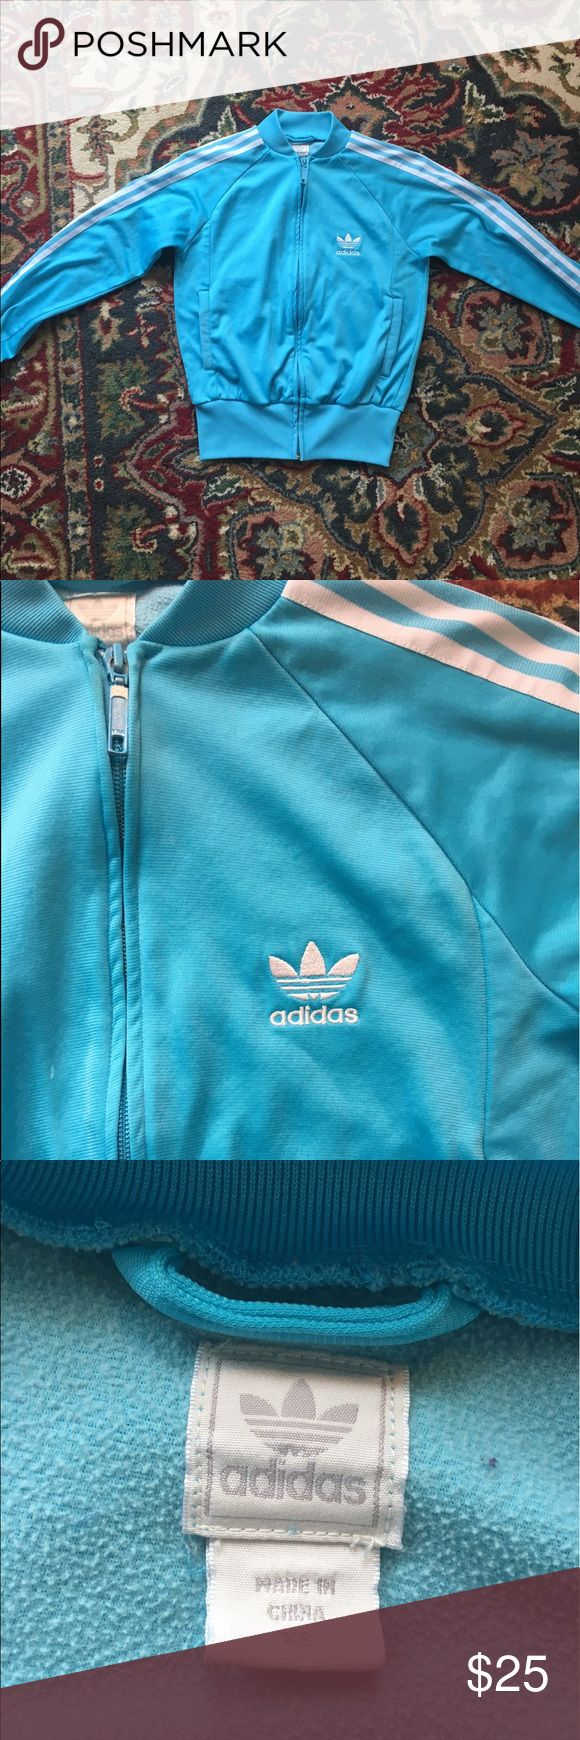 Vintage style 80s adidas track jacket baby blue Vintage style Carolina blue zip up track jacket. Adidas 3 stripes. Light aqua. Pockets! Great for your phone. Throwback style. Size XS women's Adidas Jackets & Coats